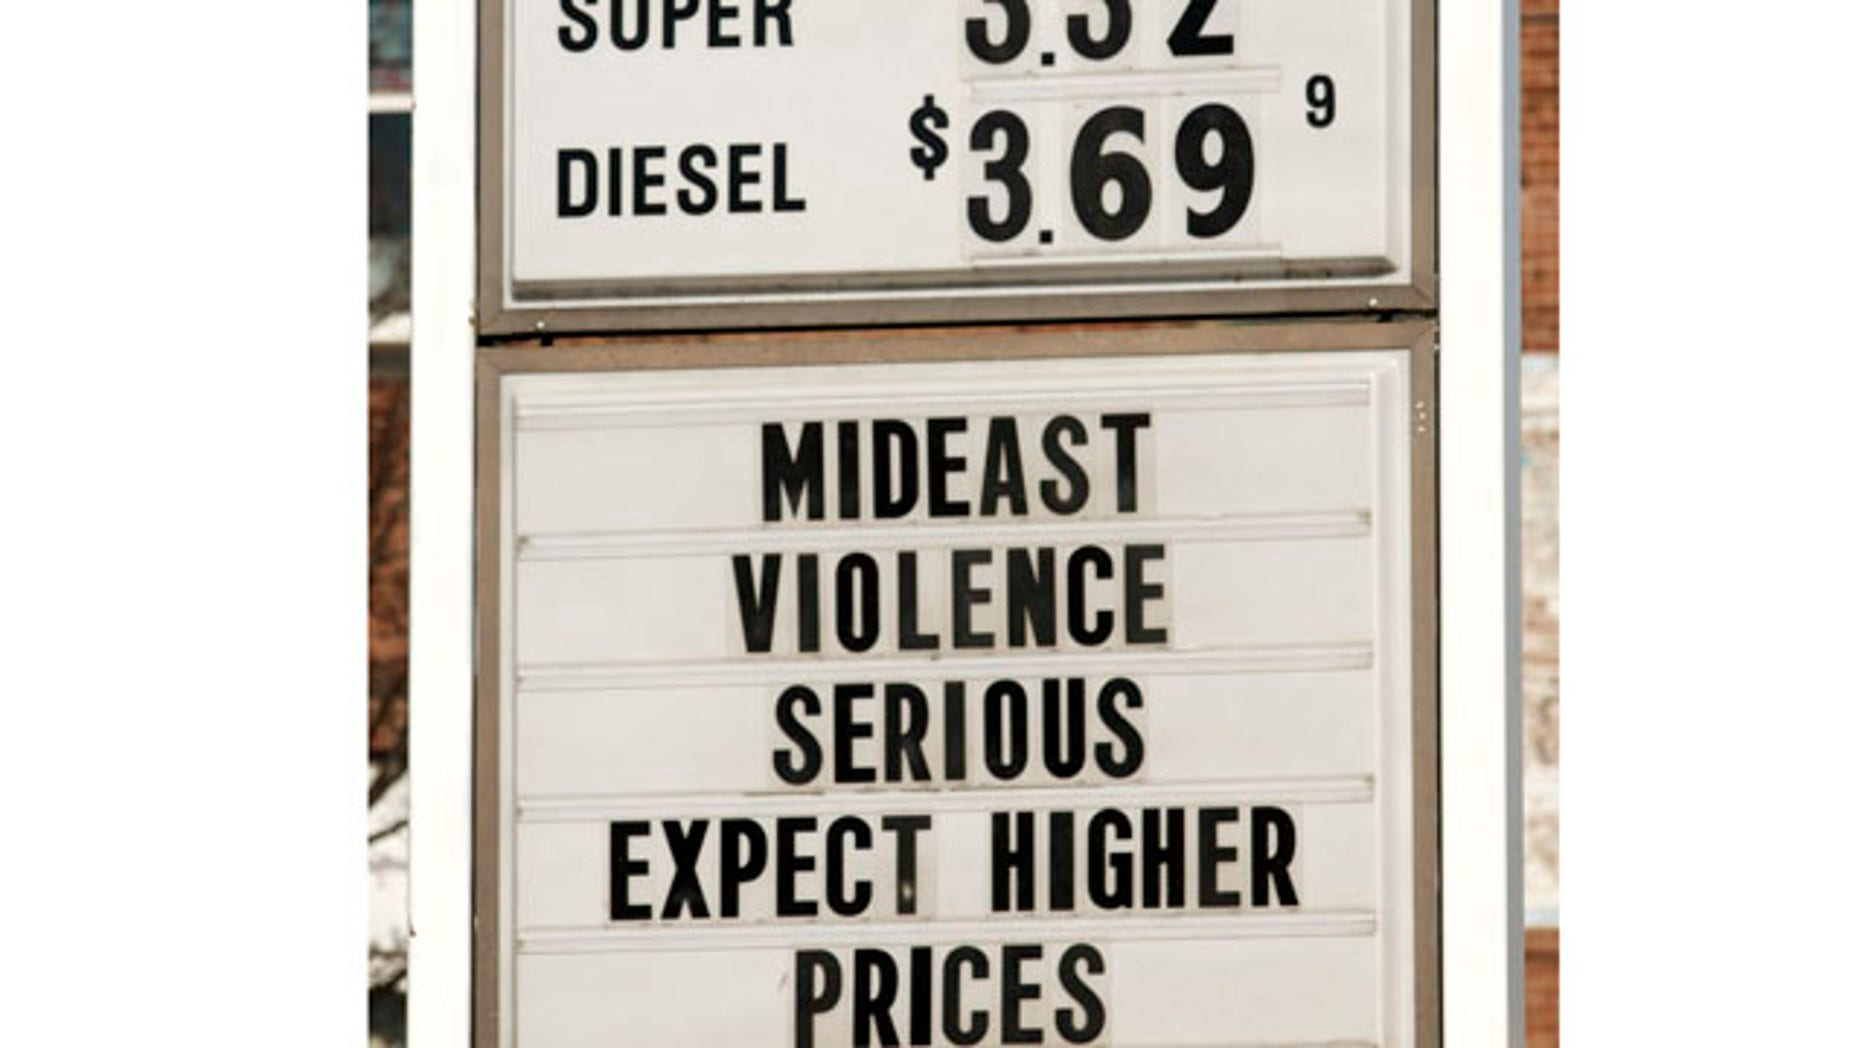 Feb. 23: A sign advertises gas and diesel prices while also giving an explanation to customers at a service station in Easthampton, Mass.